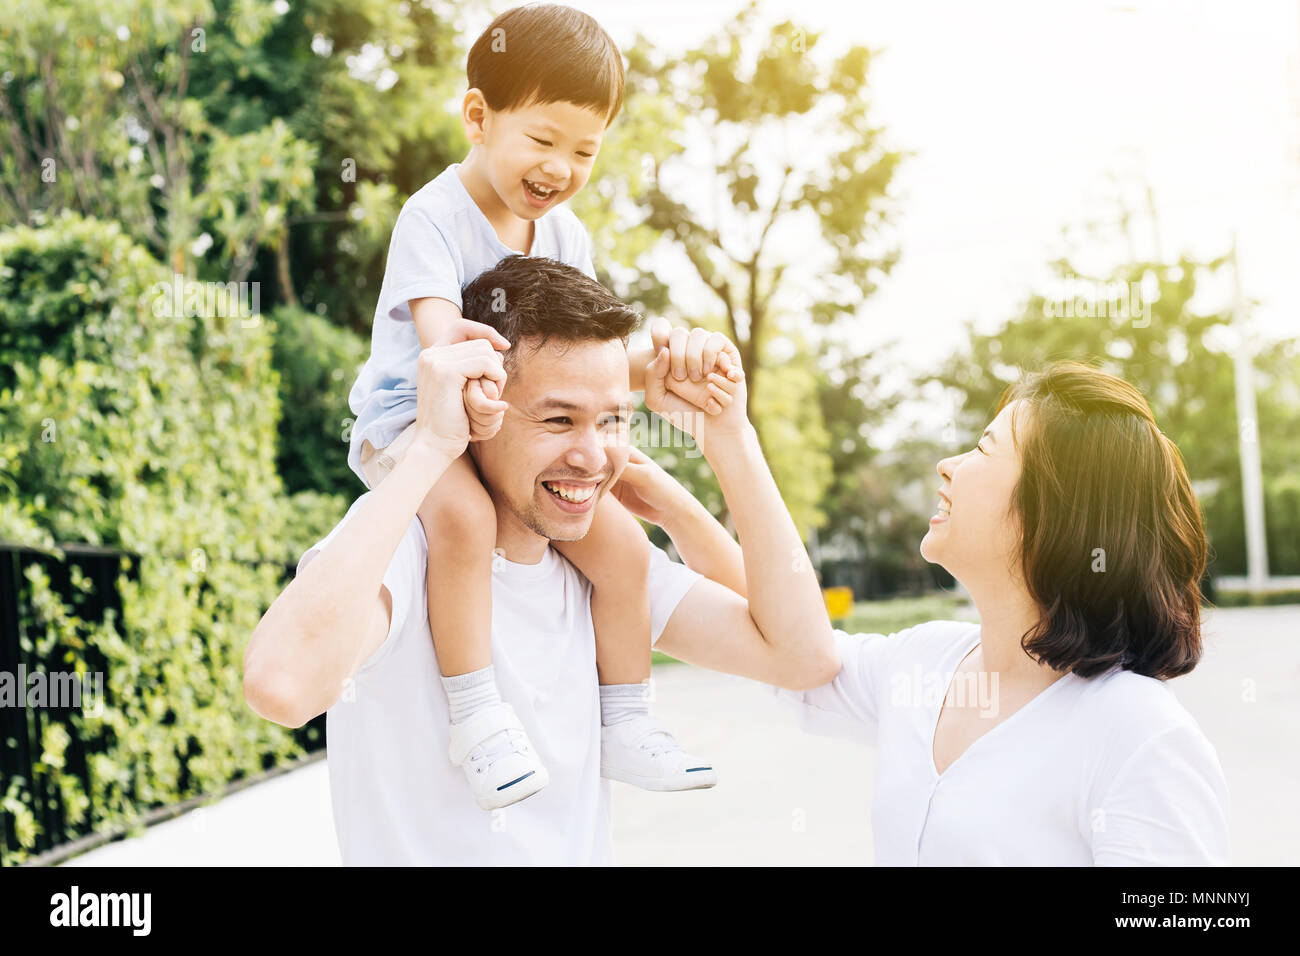 Cute Asian father piggbacking his son along with his wife in the park. Excited family spending time together with happiness - Stock Image